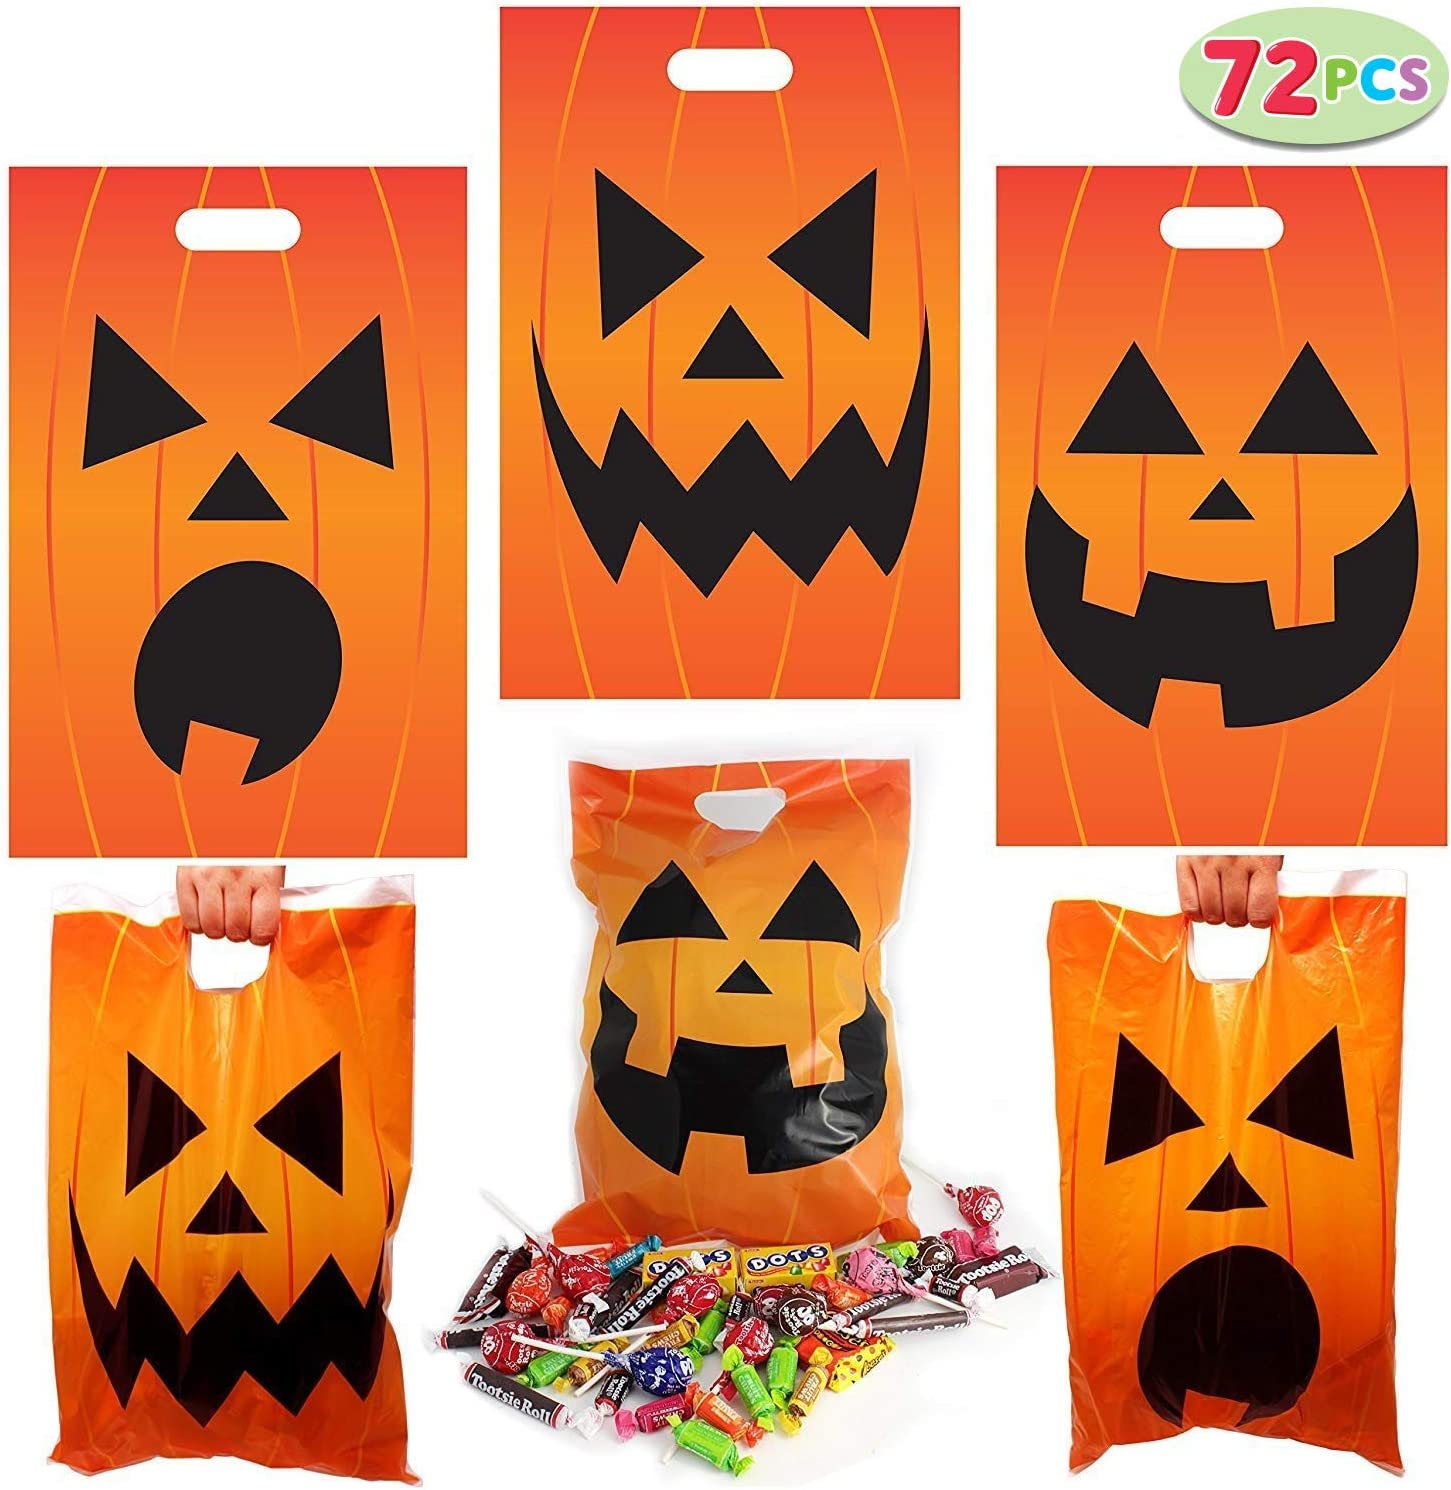 72 Pieces Halloween Jack O Lantern Goodie Bags for Trick-or-Treating, Halloween Party Favors, Halloween Snacks, Event Party Supplies, Halloween Trick Or Treat Bags: Toys & Games